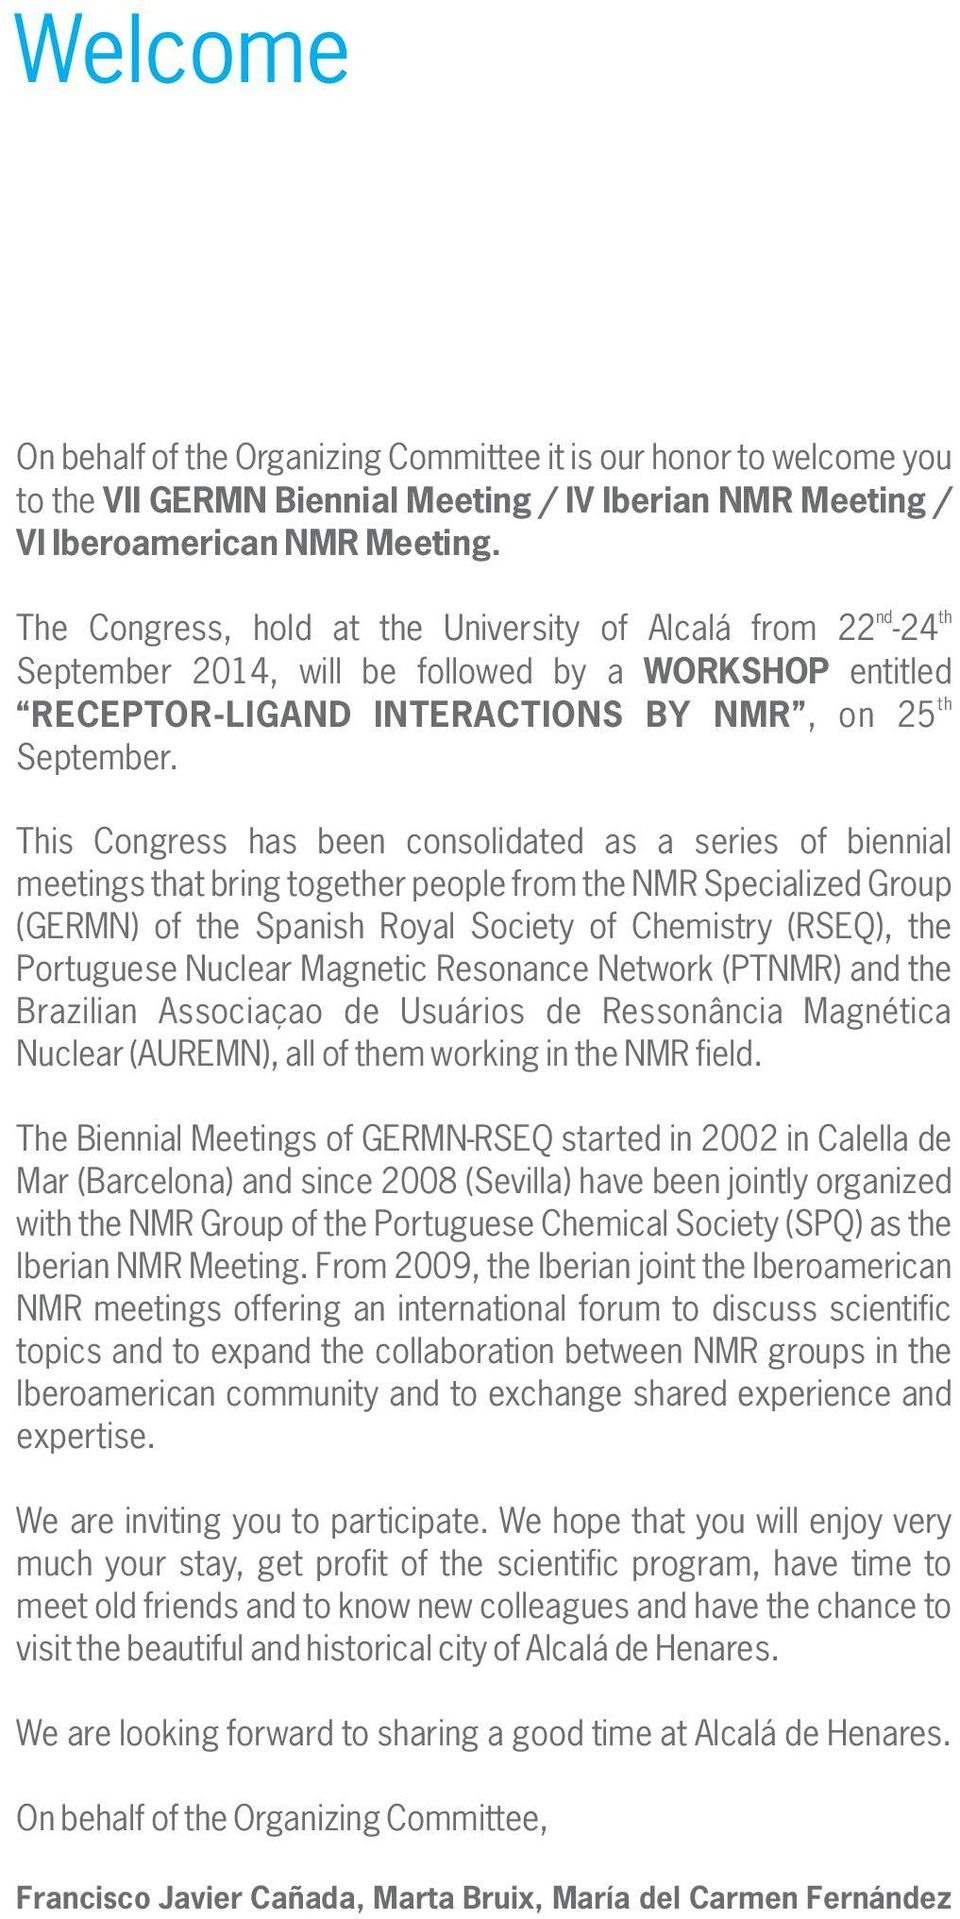 This Congress has been consolidated as a series of biennial meetings that bring together people from the NMR Specialized Group (GERMN) of the Spanish Royal Society of Chemistry (RSEQ), the Portuguese